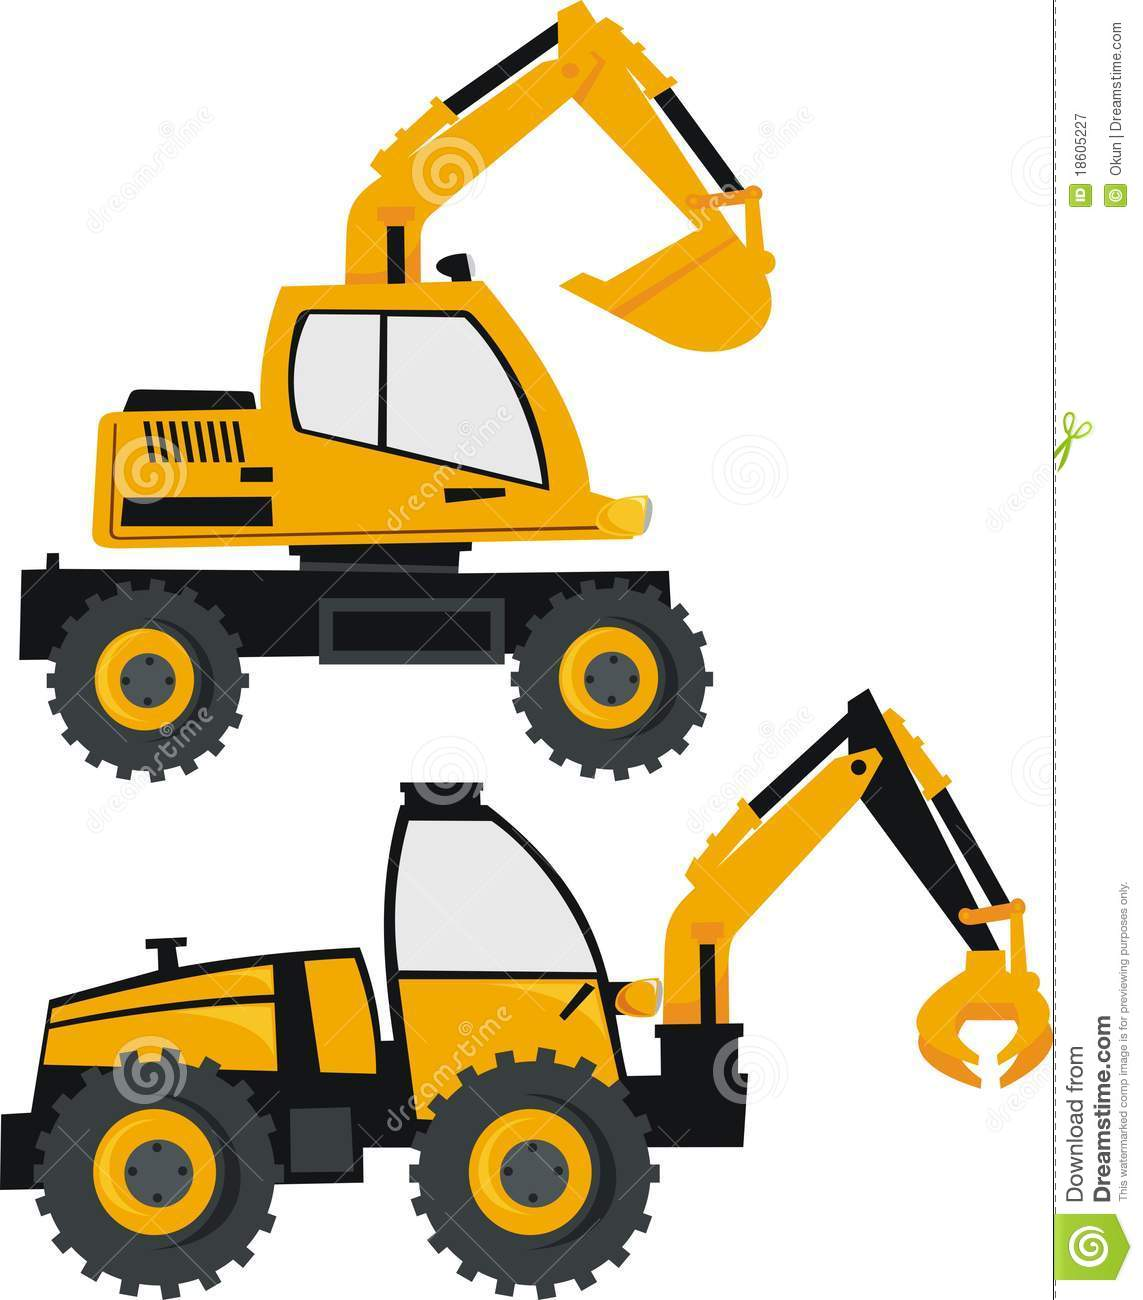 Excavator and loader stock. Backhoe clipart construction equipment vector black and white download